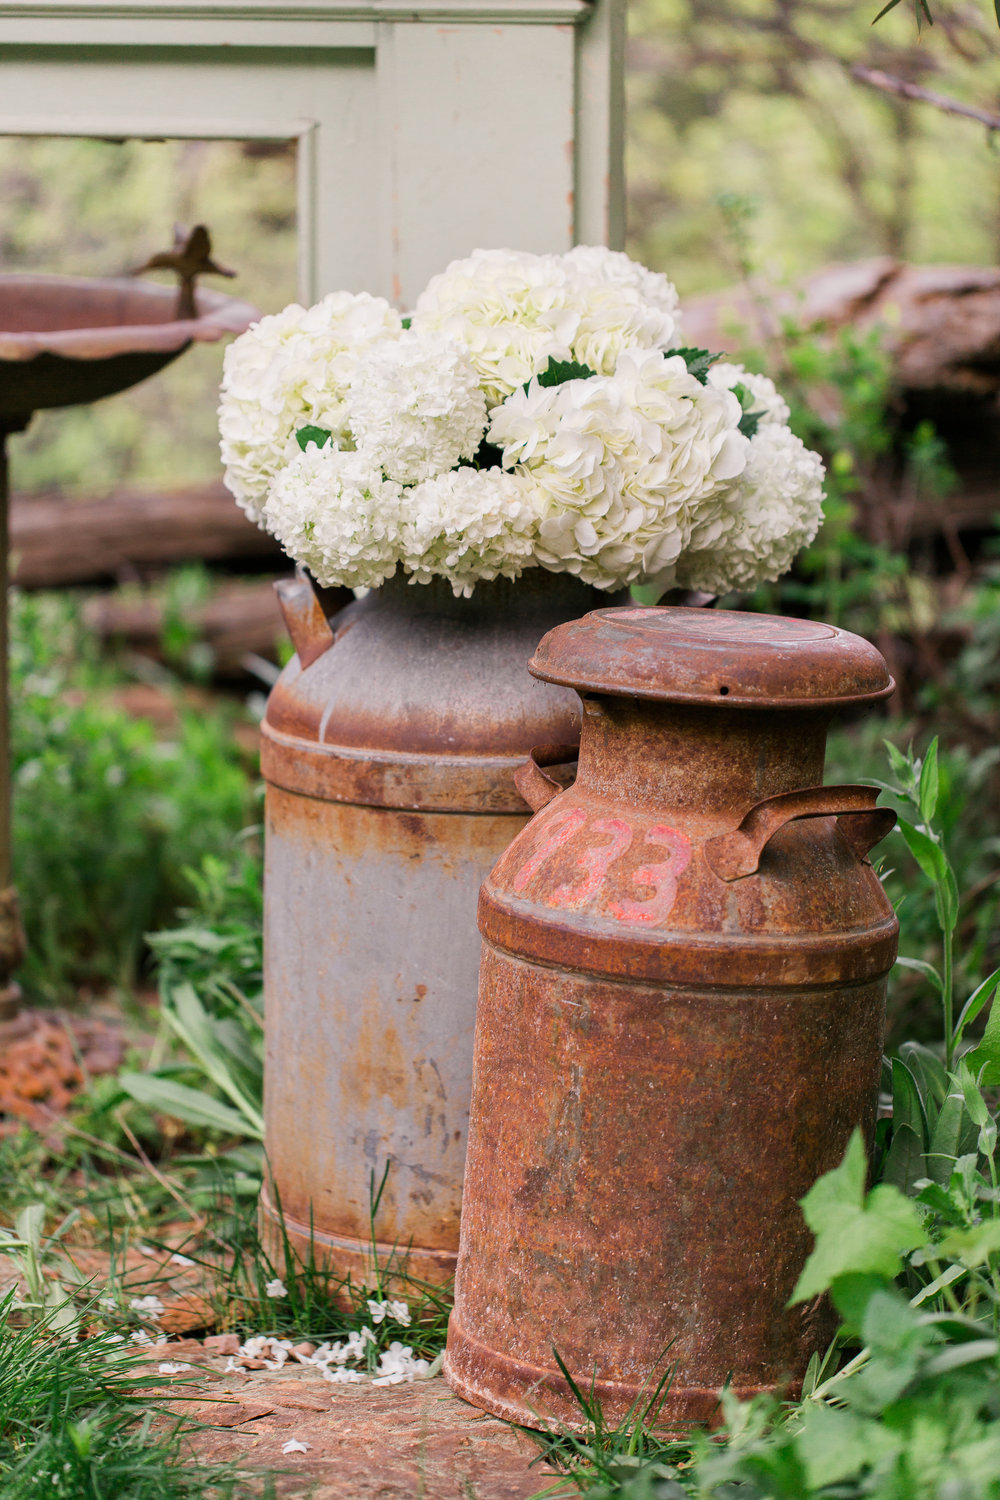 $15.00 Rustalicious milk jugs can be used for flowers and a fun element to add your your decor.